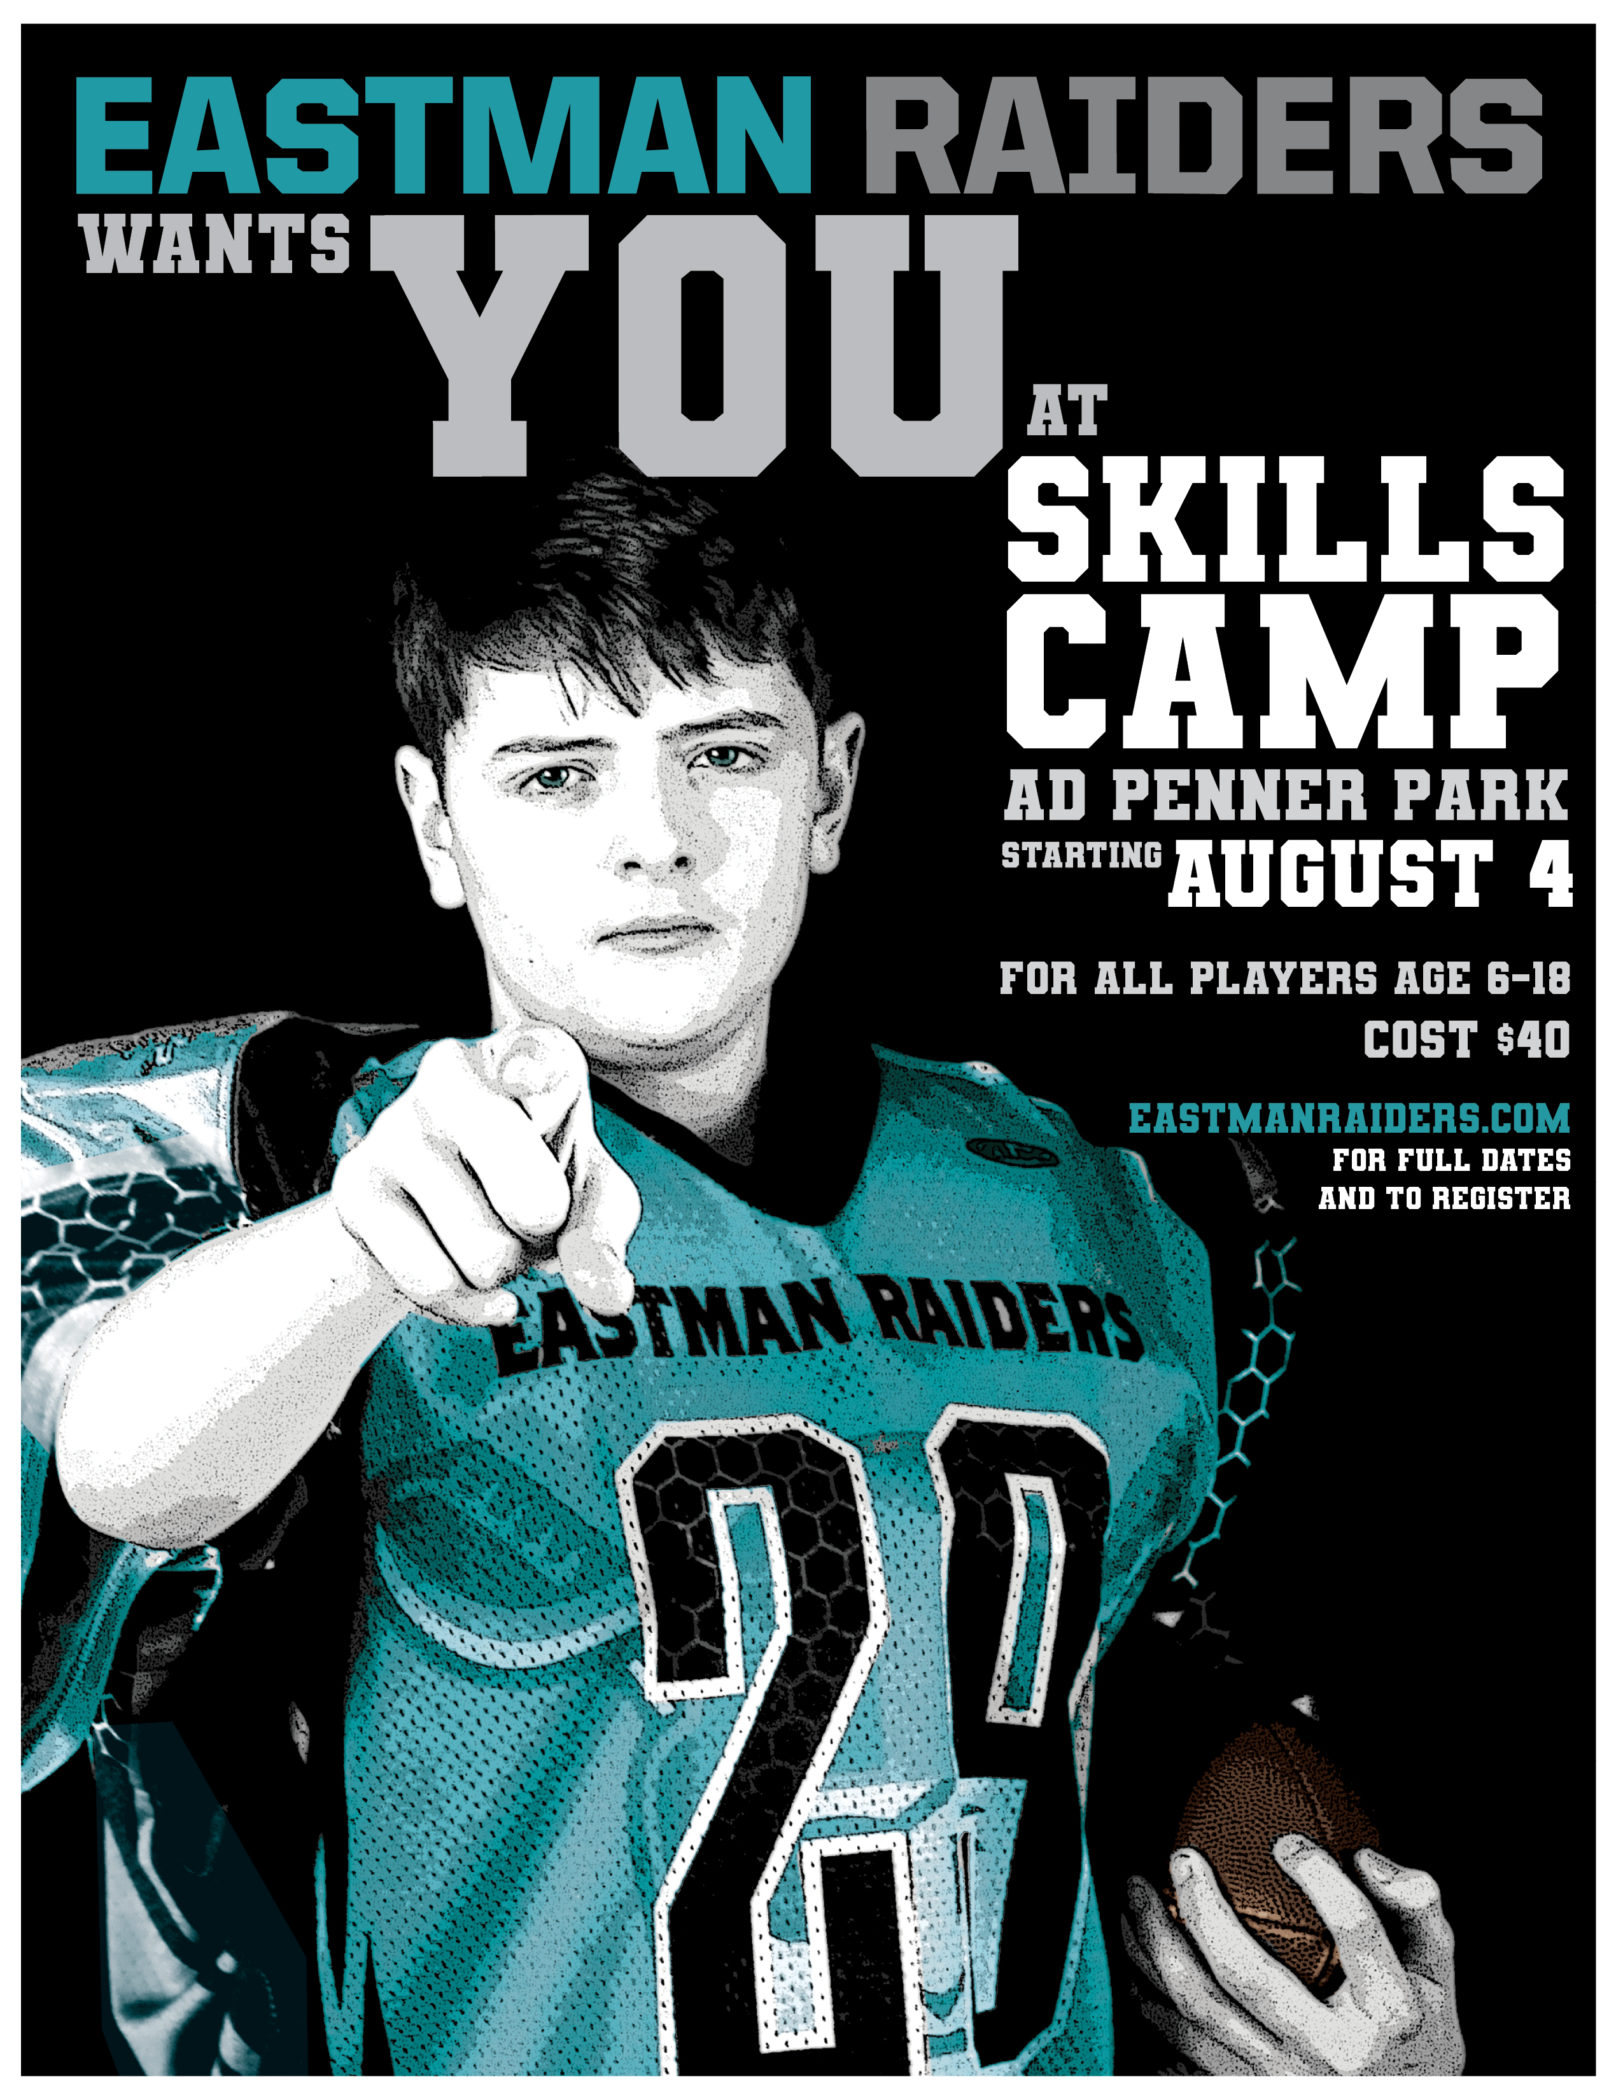 Raiders Summer Skills Camp